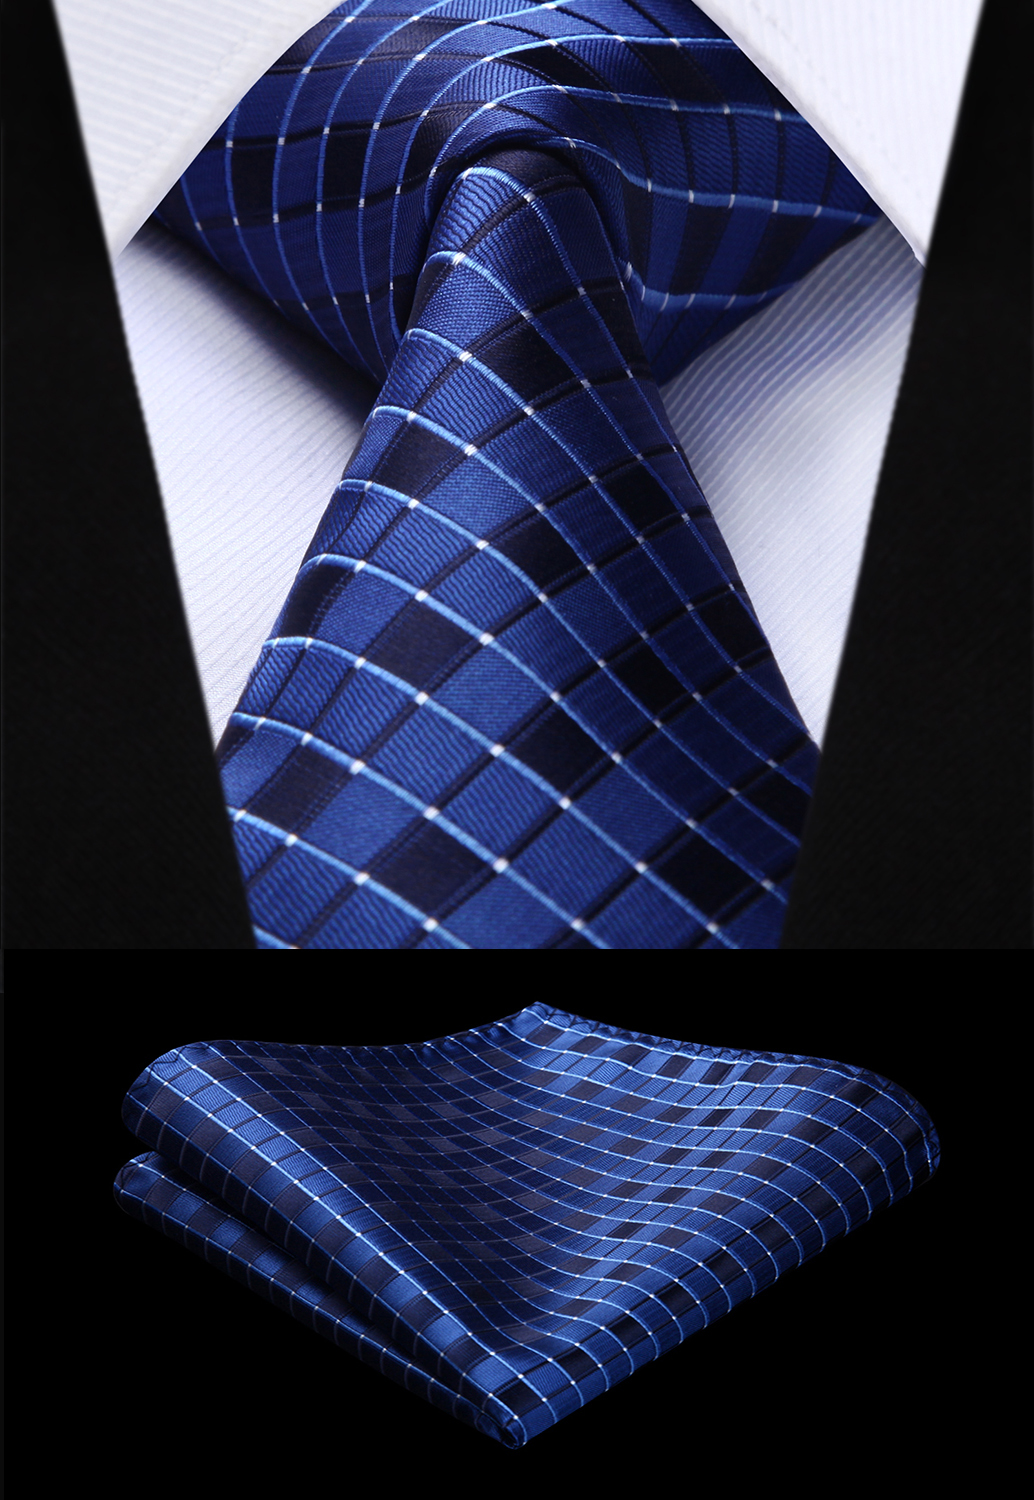 Party Wedding Classic Pocket Square Tie Woven Men Tie Fashion Navy Blue Check Plaid Necktie Handkerchief Set#TC717V8S